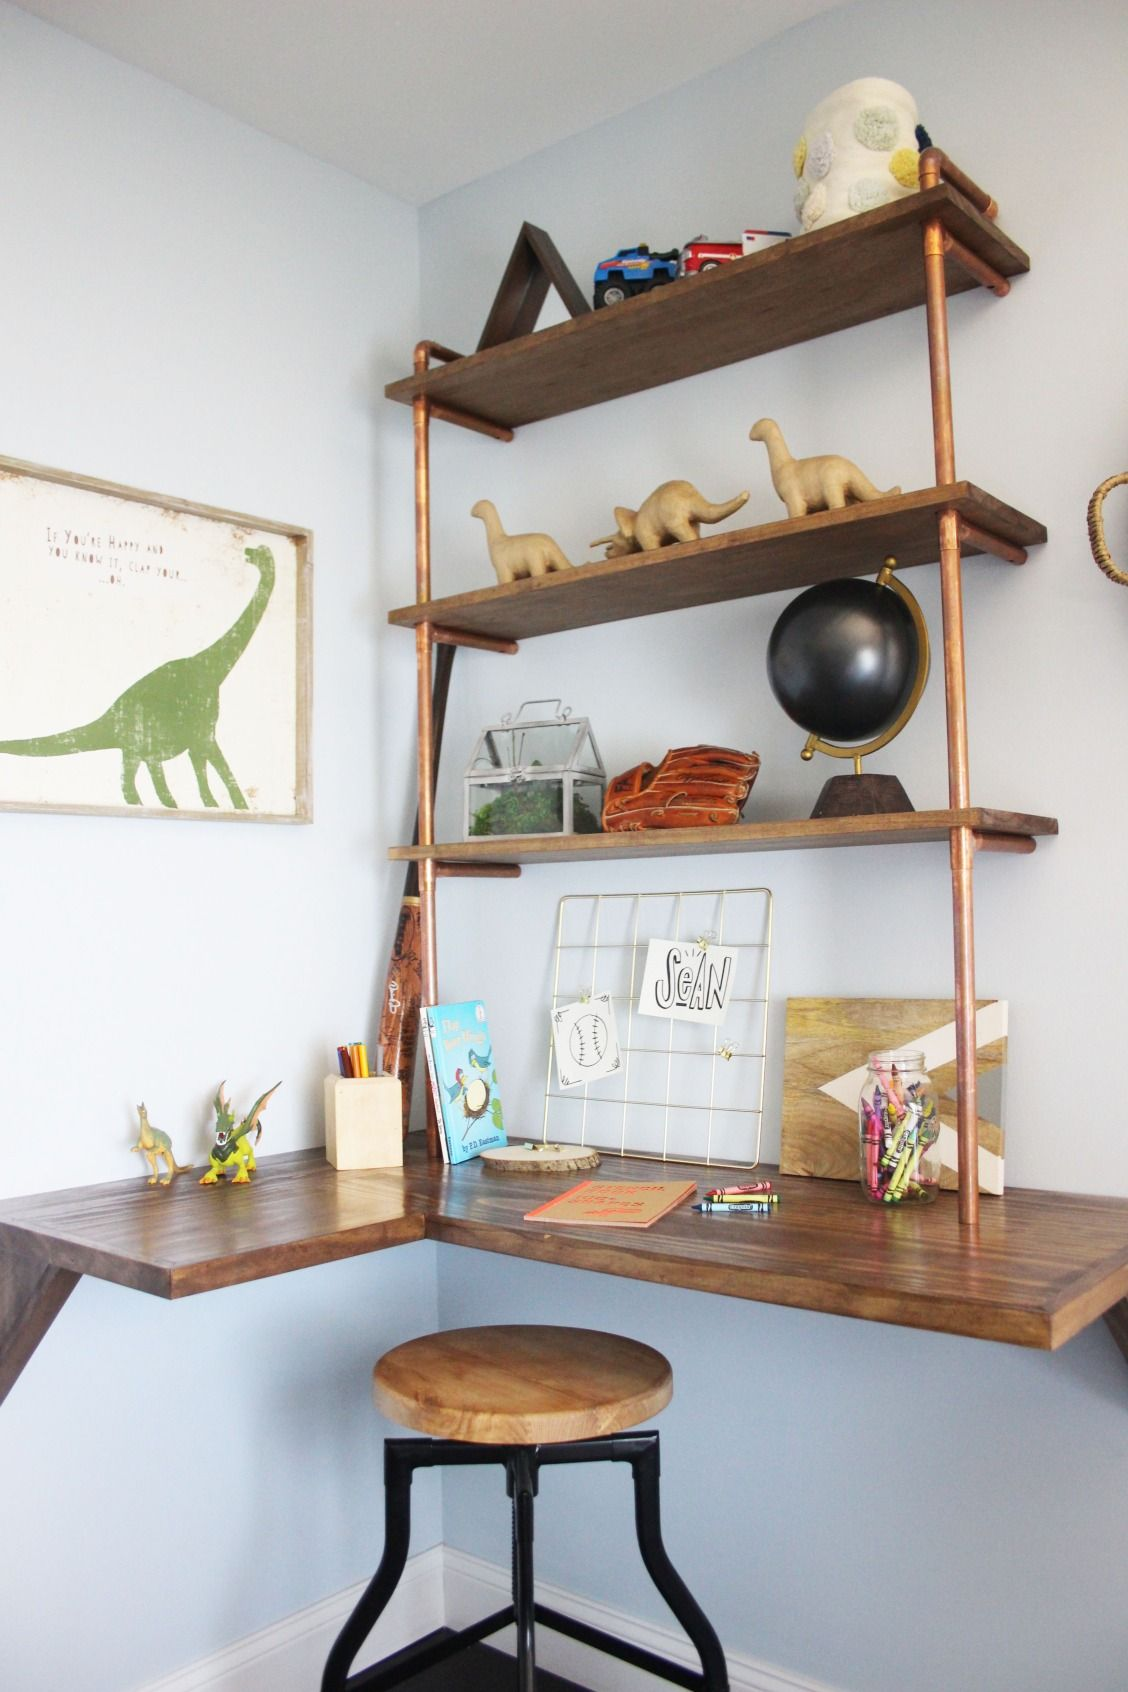 Diy Projects And Ideas Floating Shelves Living Room Floating Shelves Diy Corner Desk